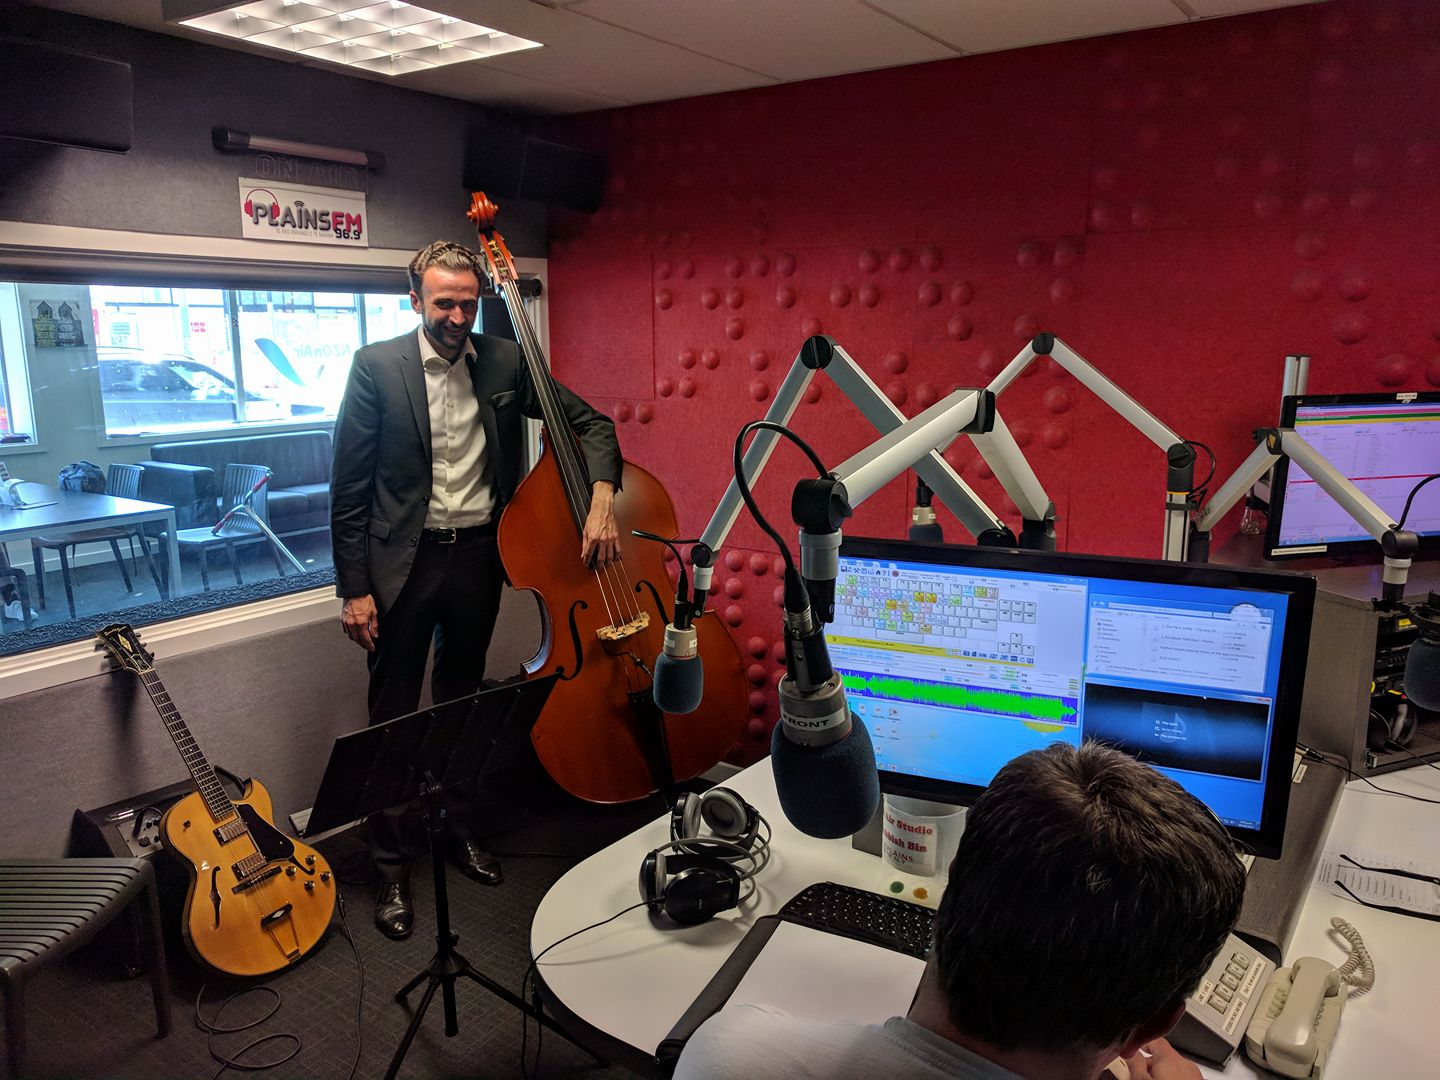 In the Plains FM 96.9 radio studio in Christchurch NZ performing live on the  Expanding Horizons  show. Click here to listen to the  podcast